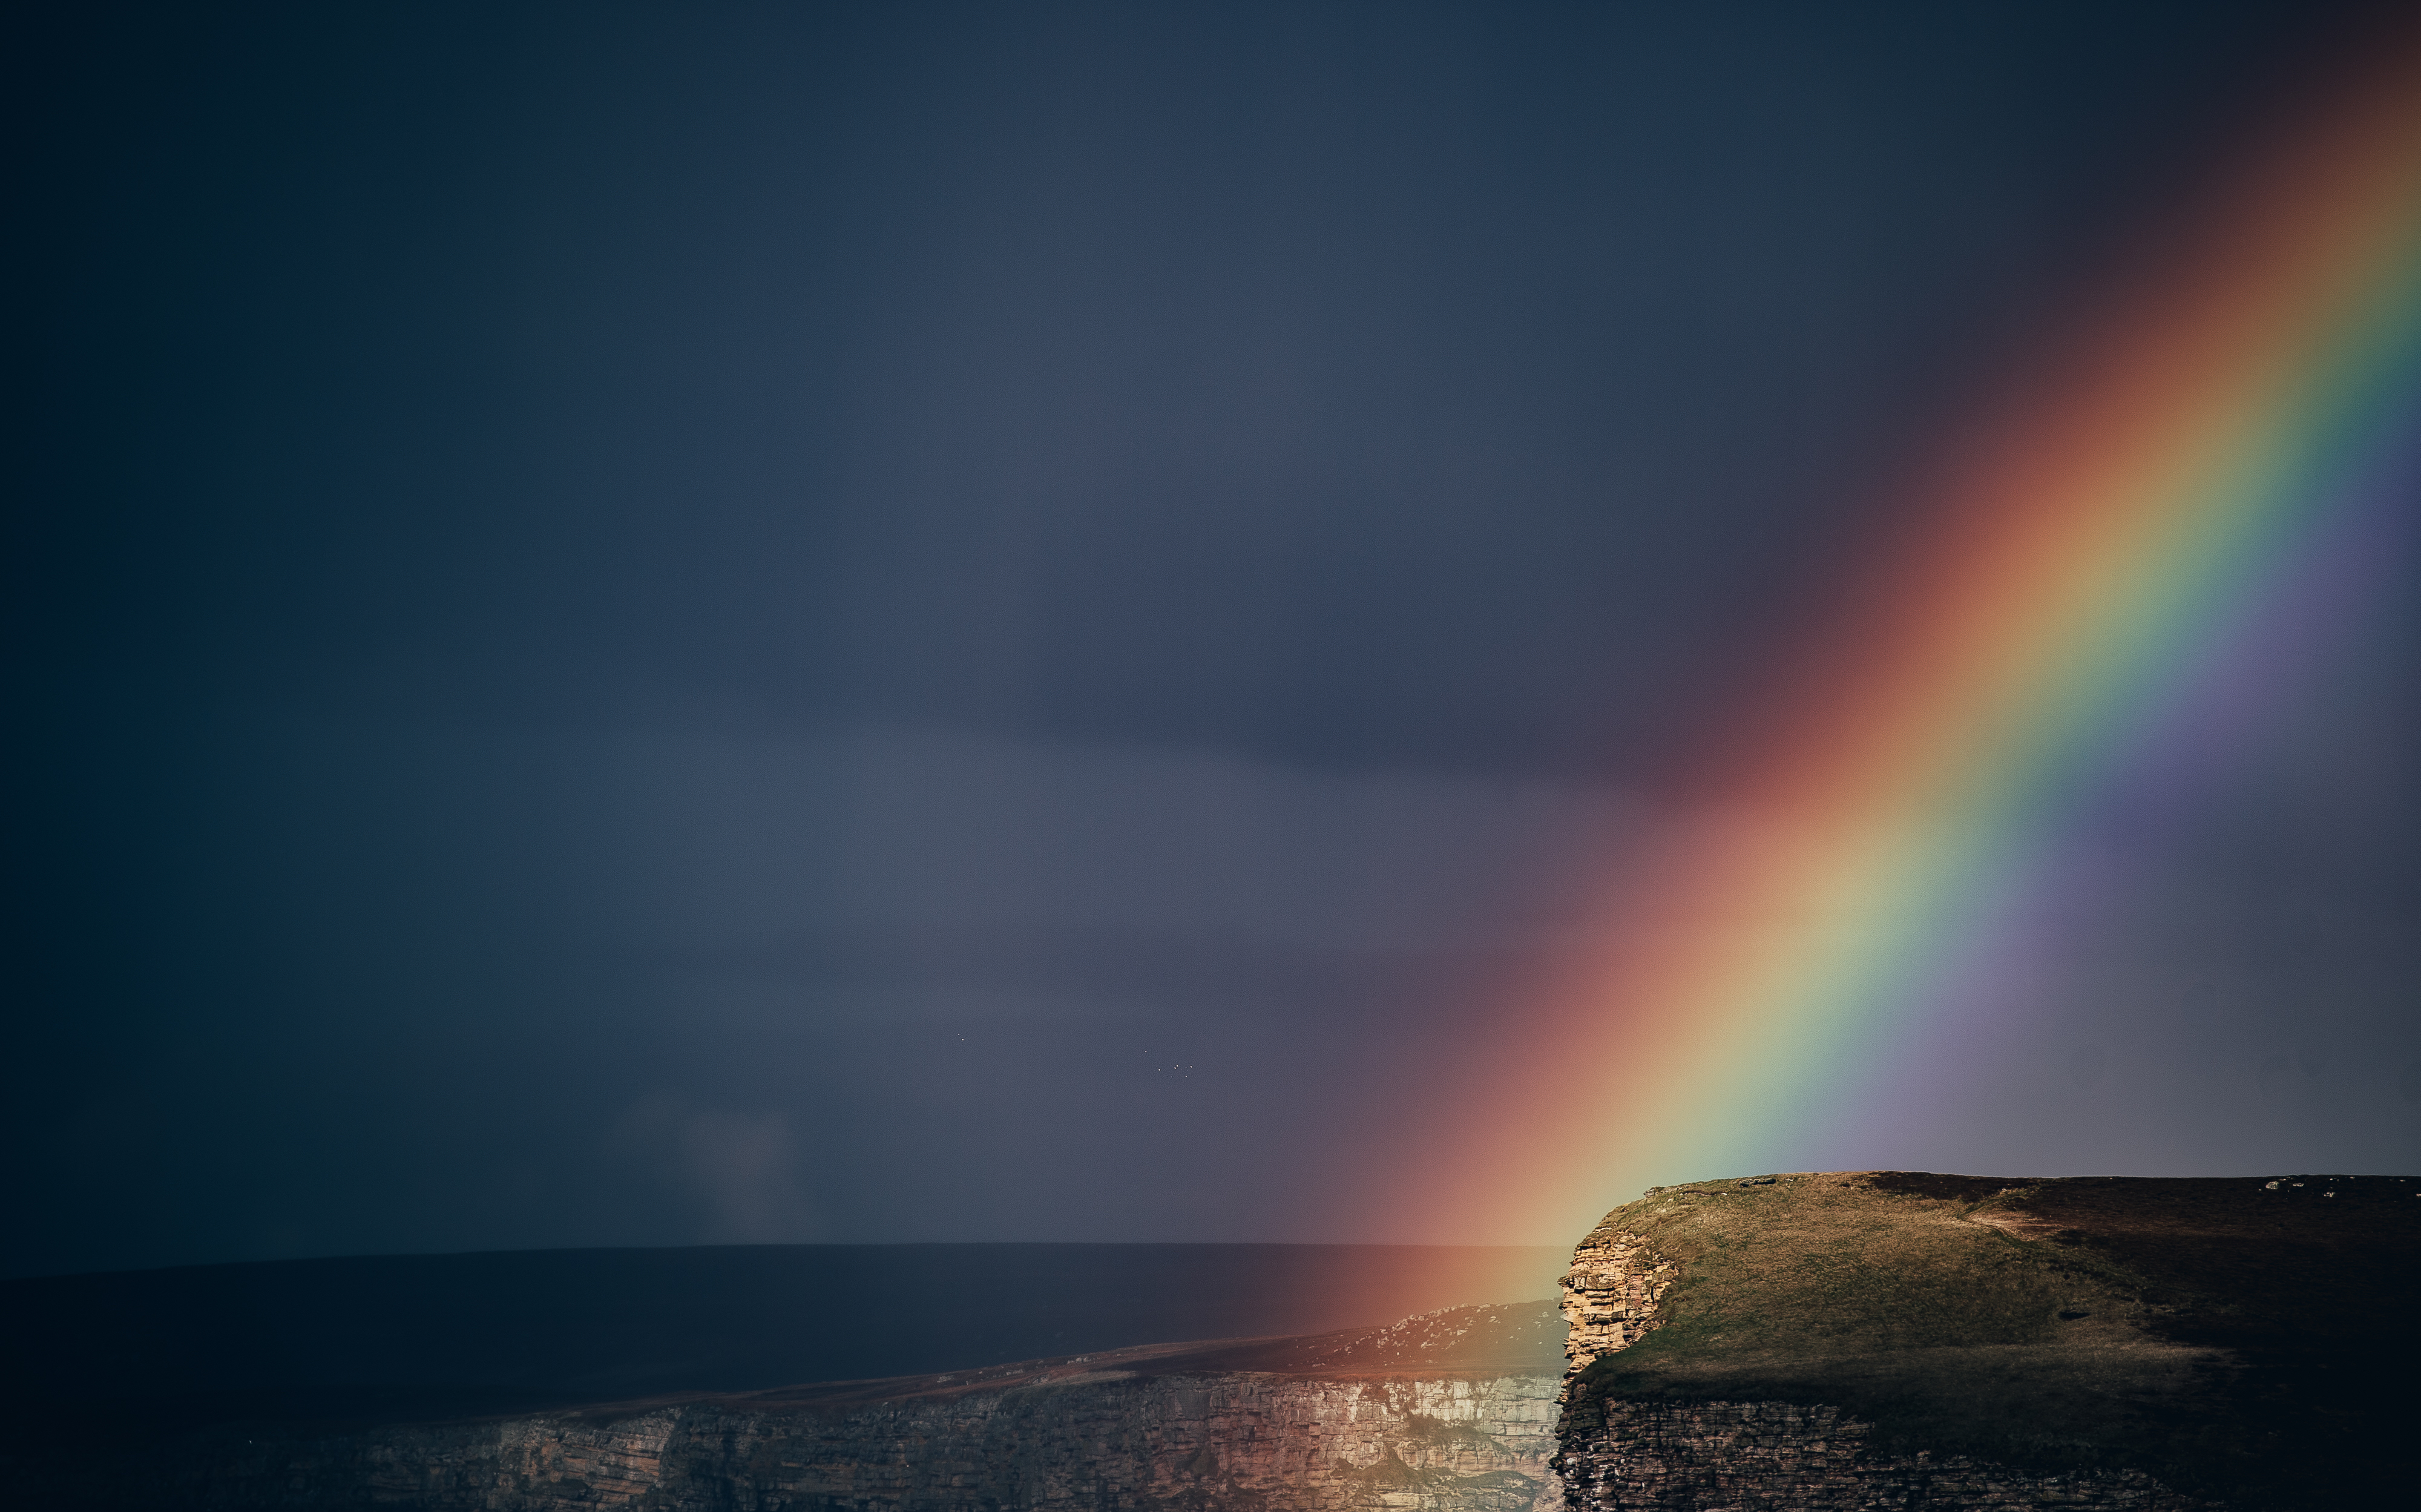 Rainbow over cliffs